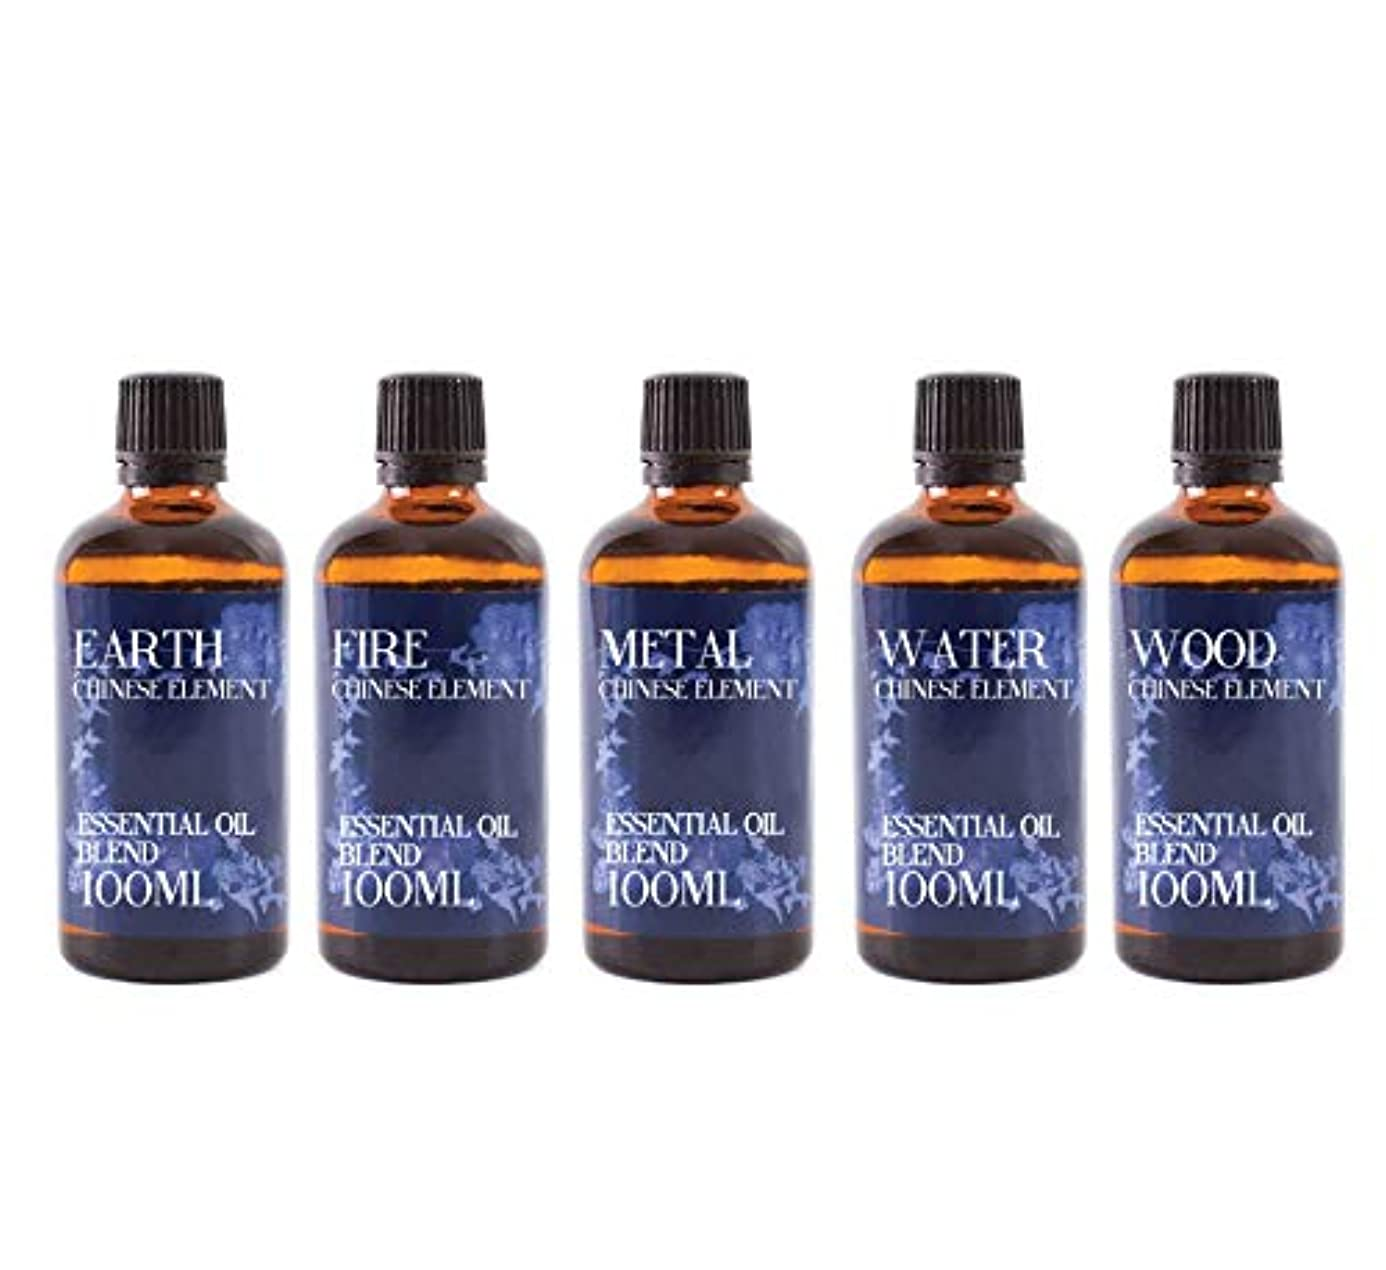 喉頭ゲートウェイ概してMystix London | Gift Starter Pack of 5x100ml Chinese Elements Essential Oil Blends